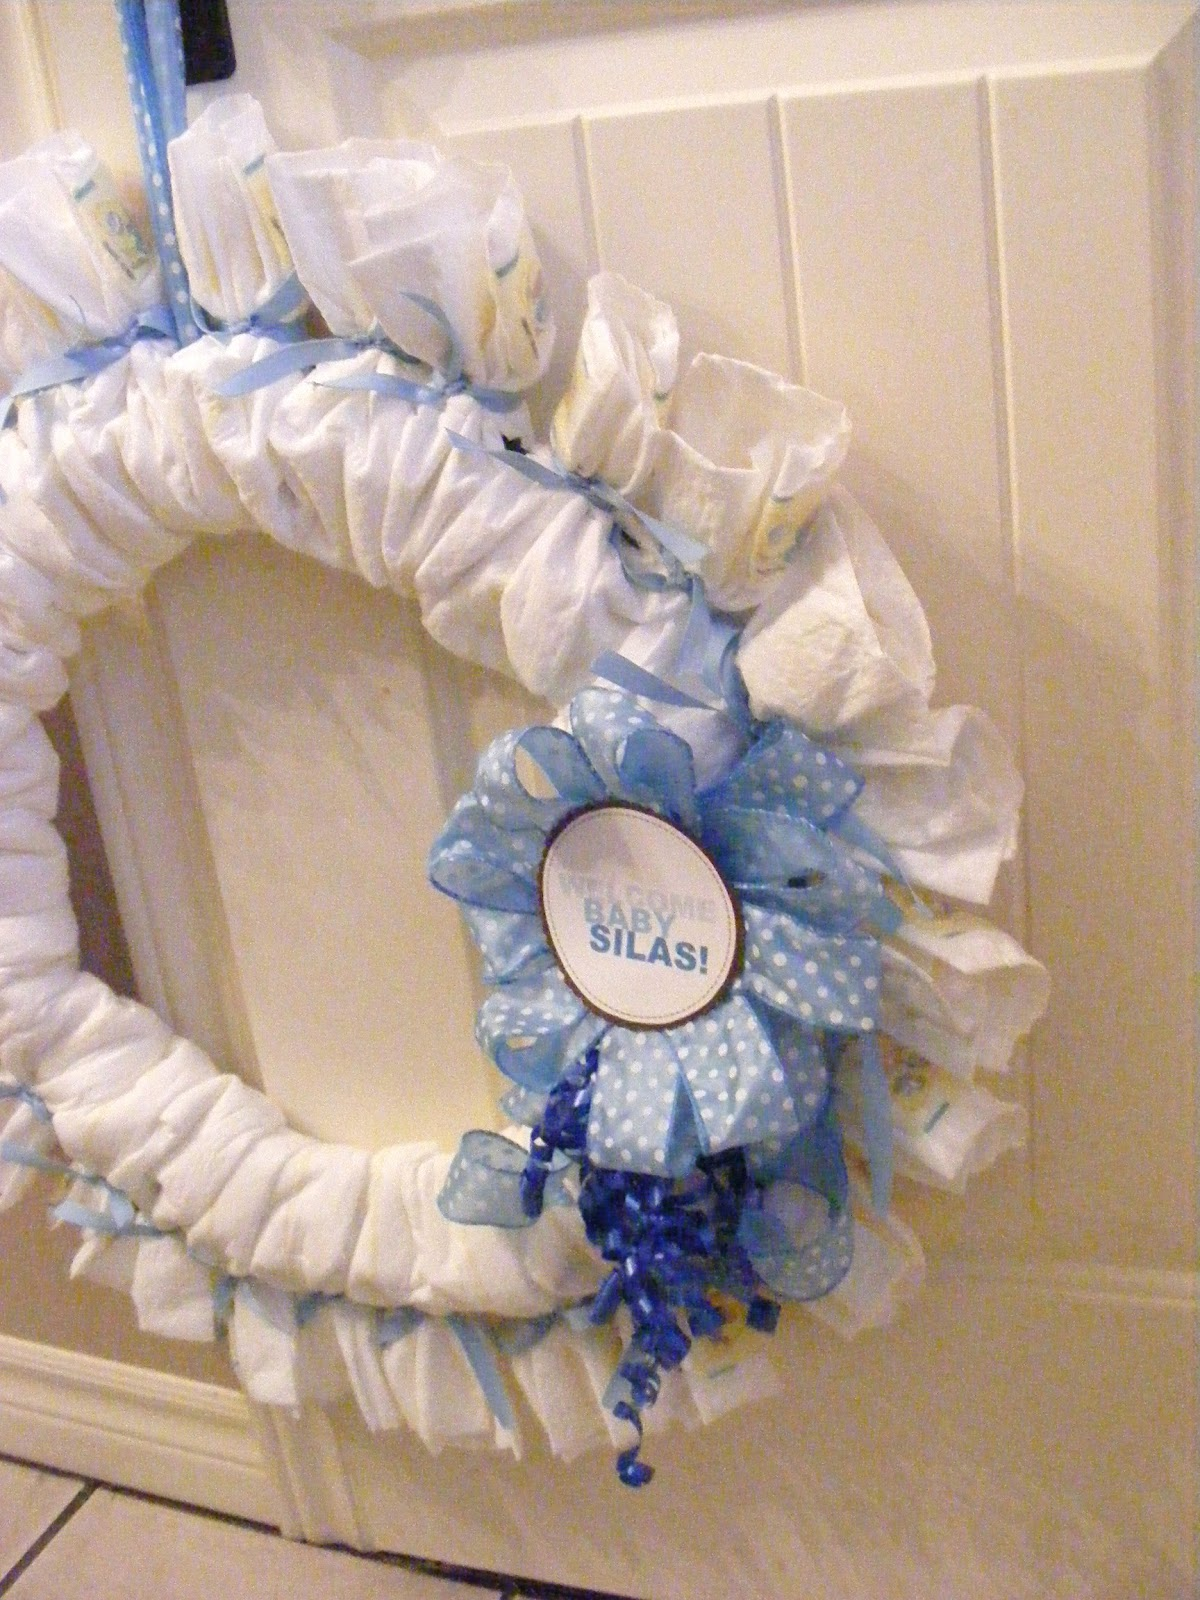 A Baby Shower Diaper Wreath The Complete Guide To Imperfect Homemaking